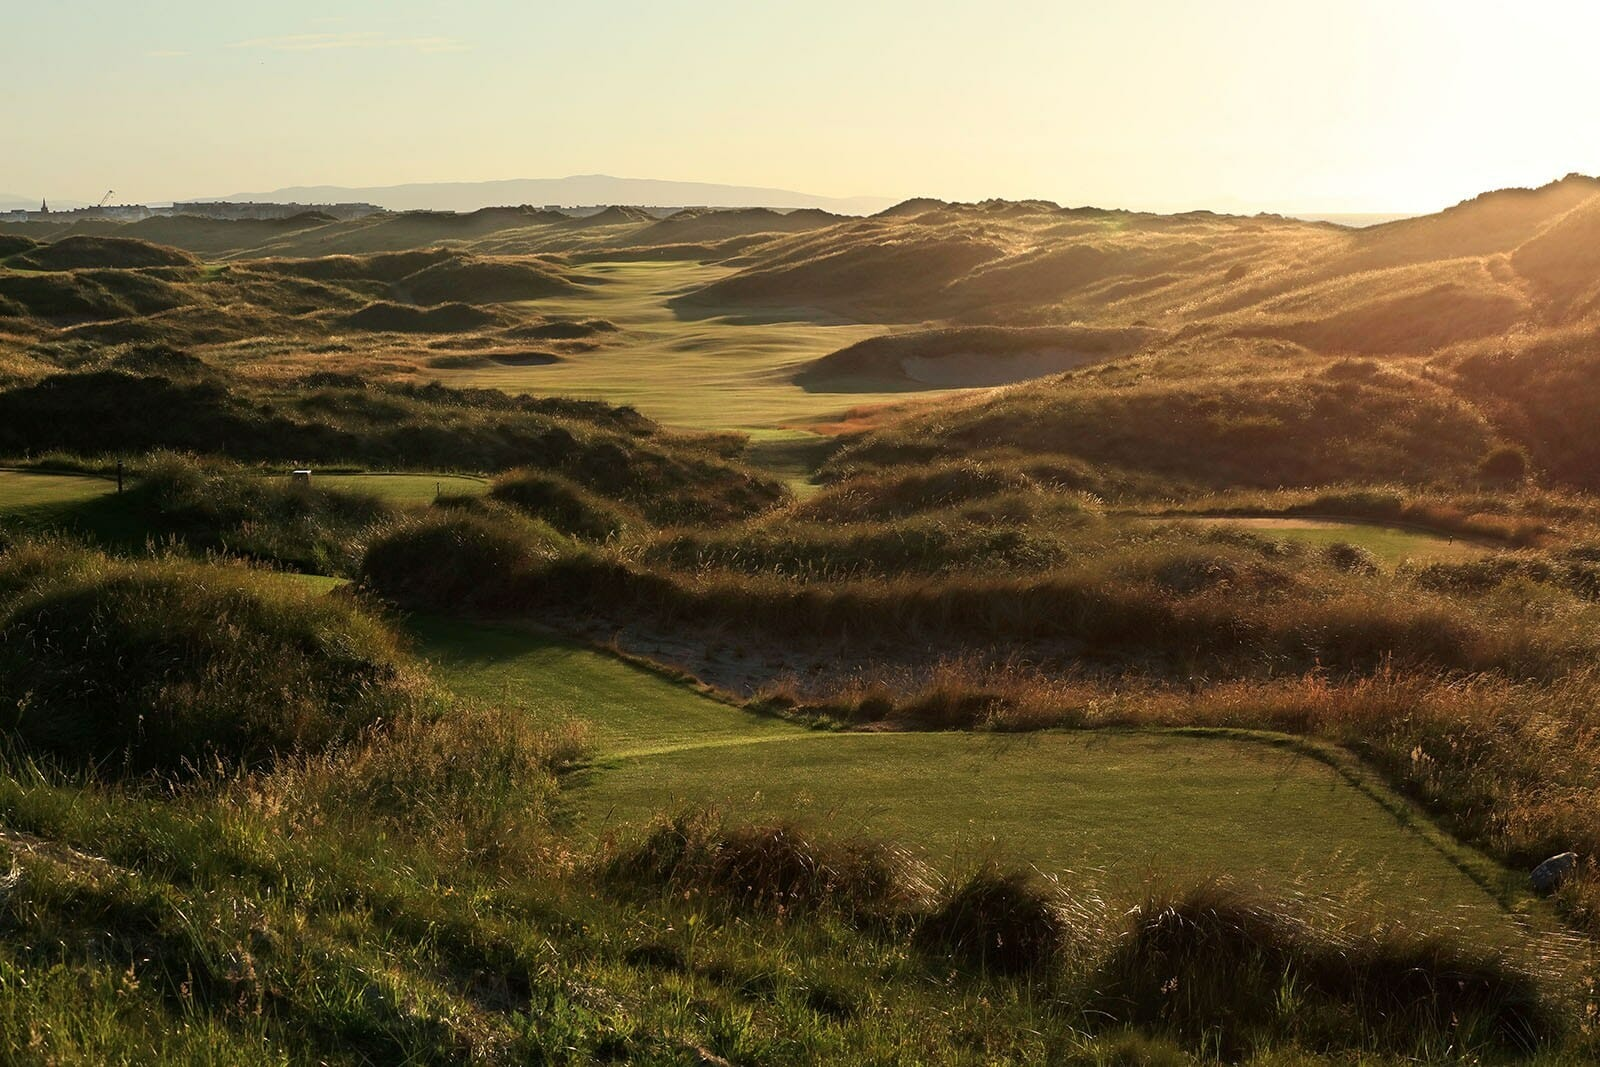 Image depicting the Valley Course at Portrush at sunset